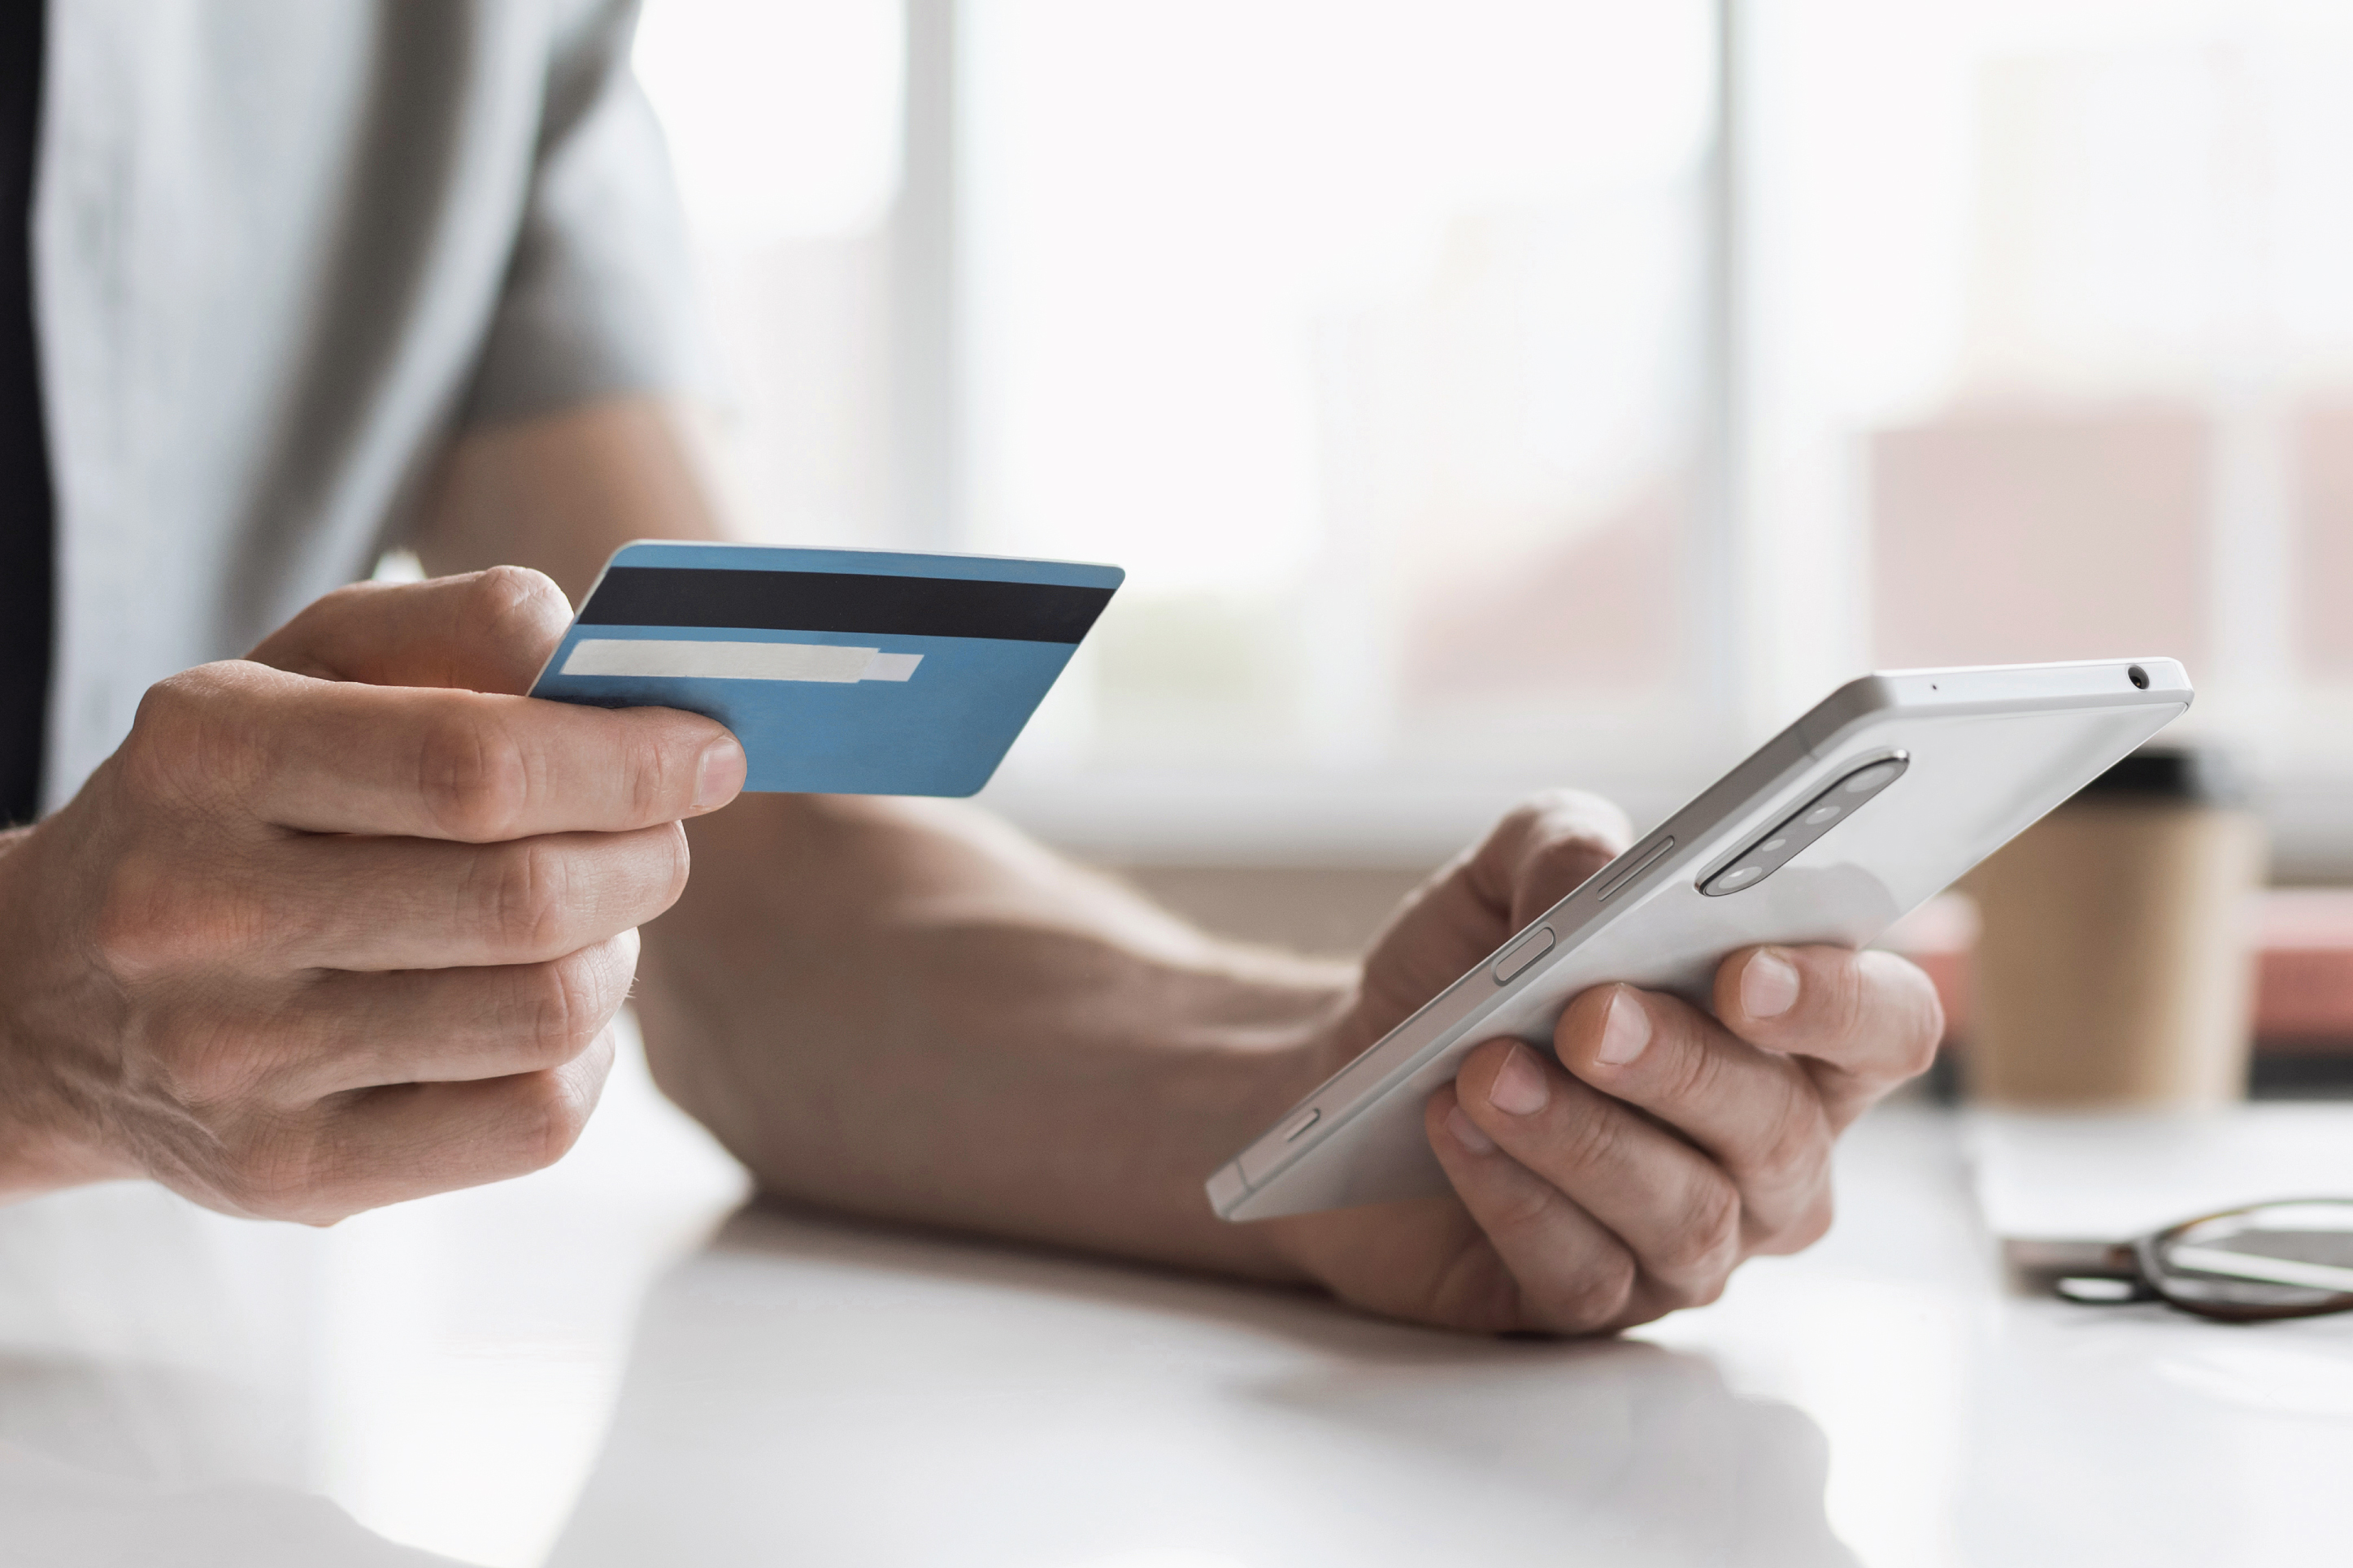 making a payment on a smart phone using a credit card